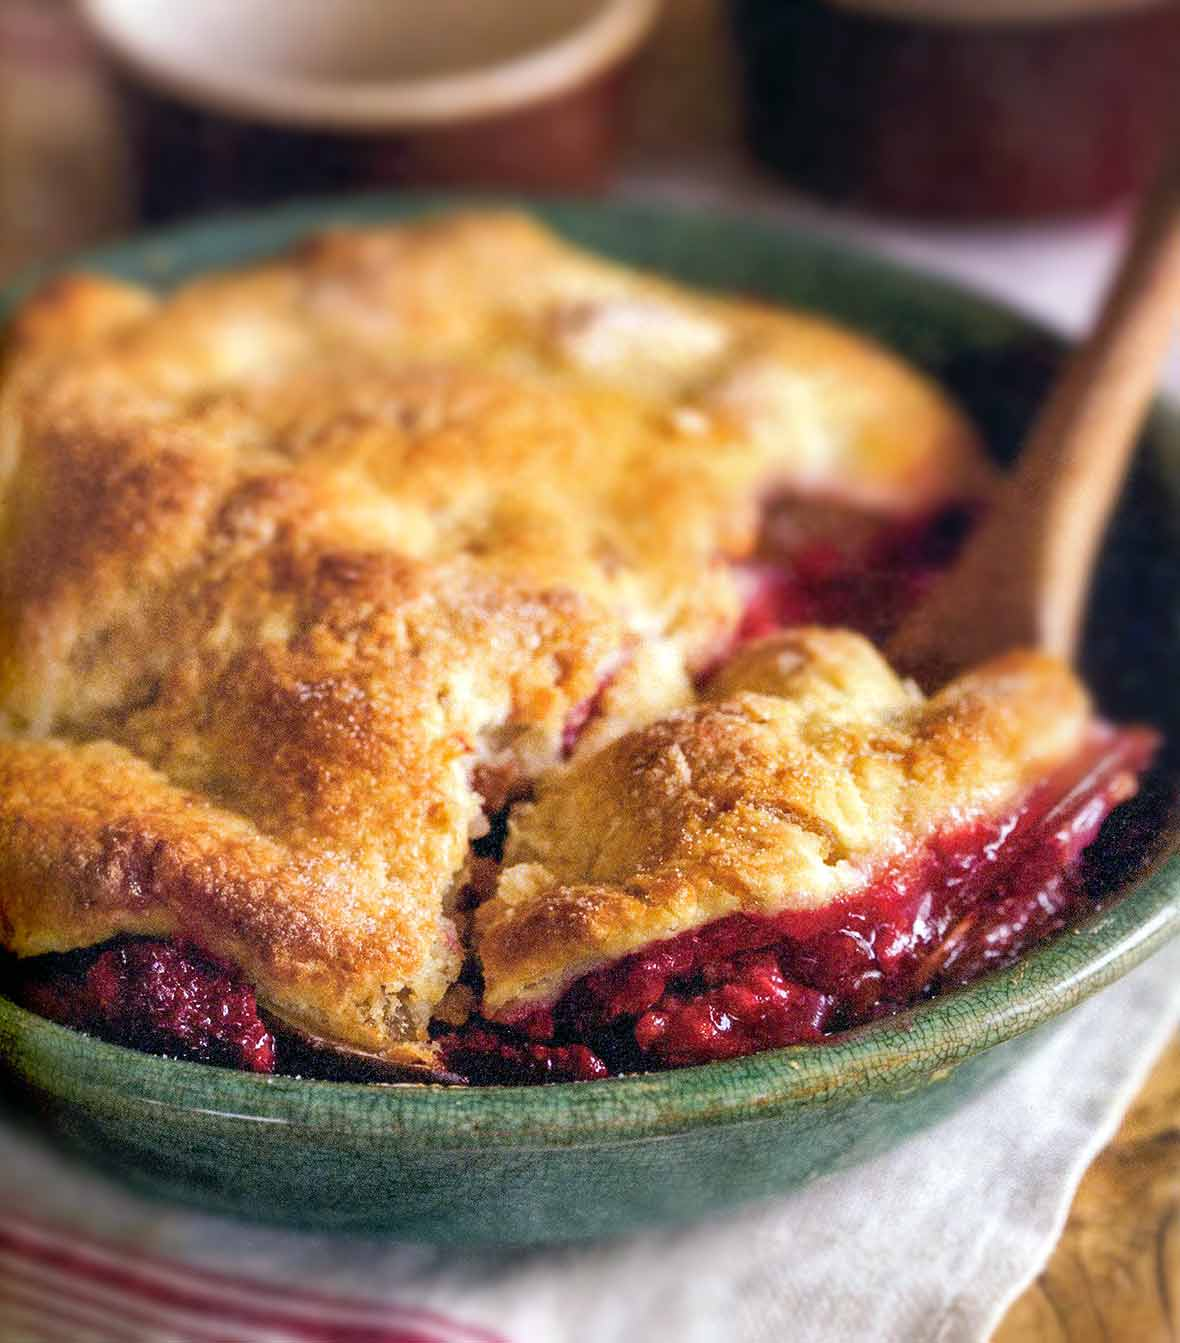 A pear and raspberry pandowdy or cobbler in a green bowl with a pastry top, wooden spoon inside